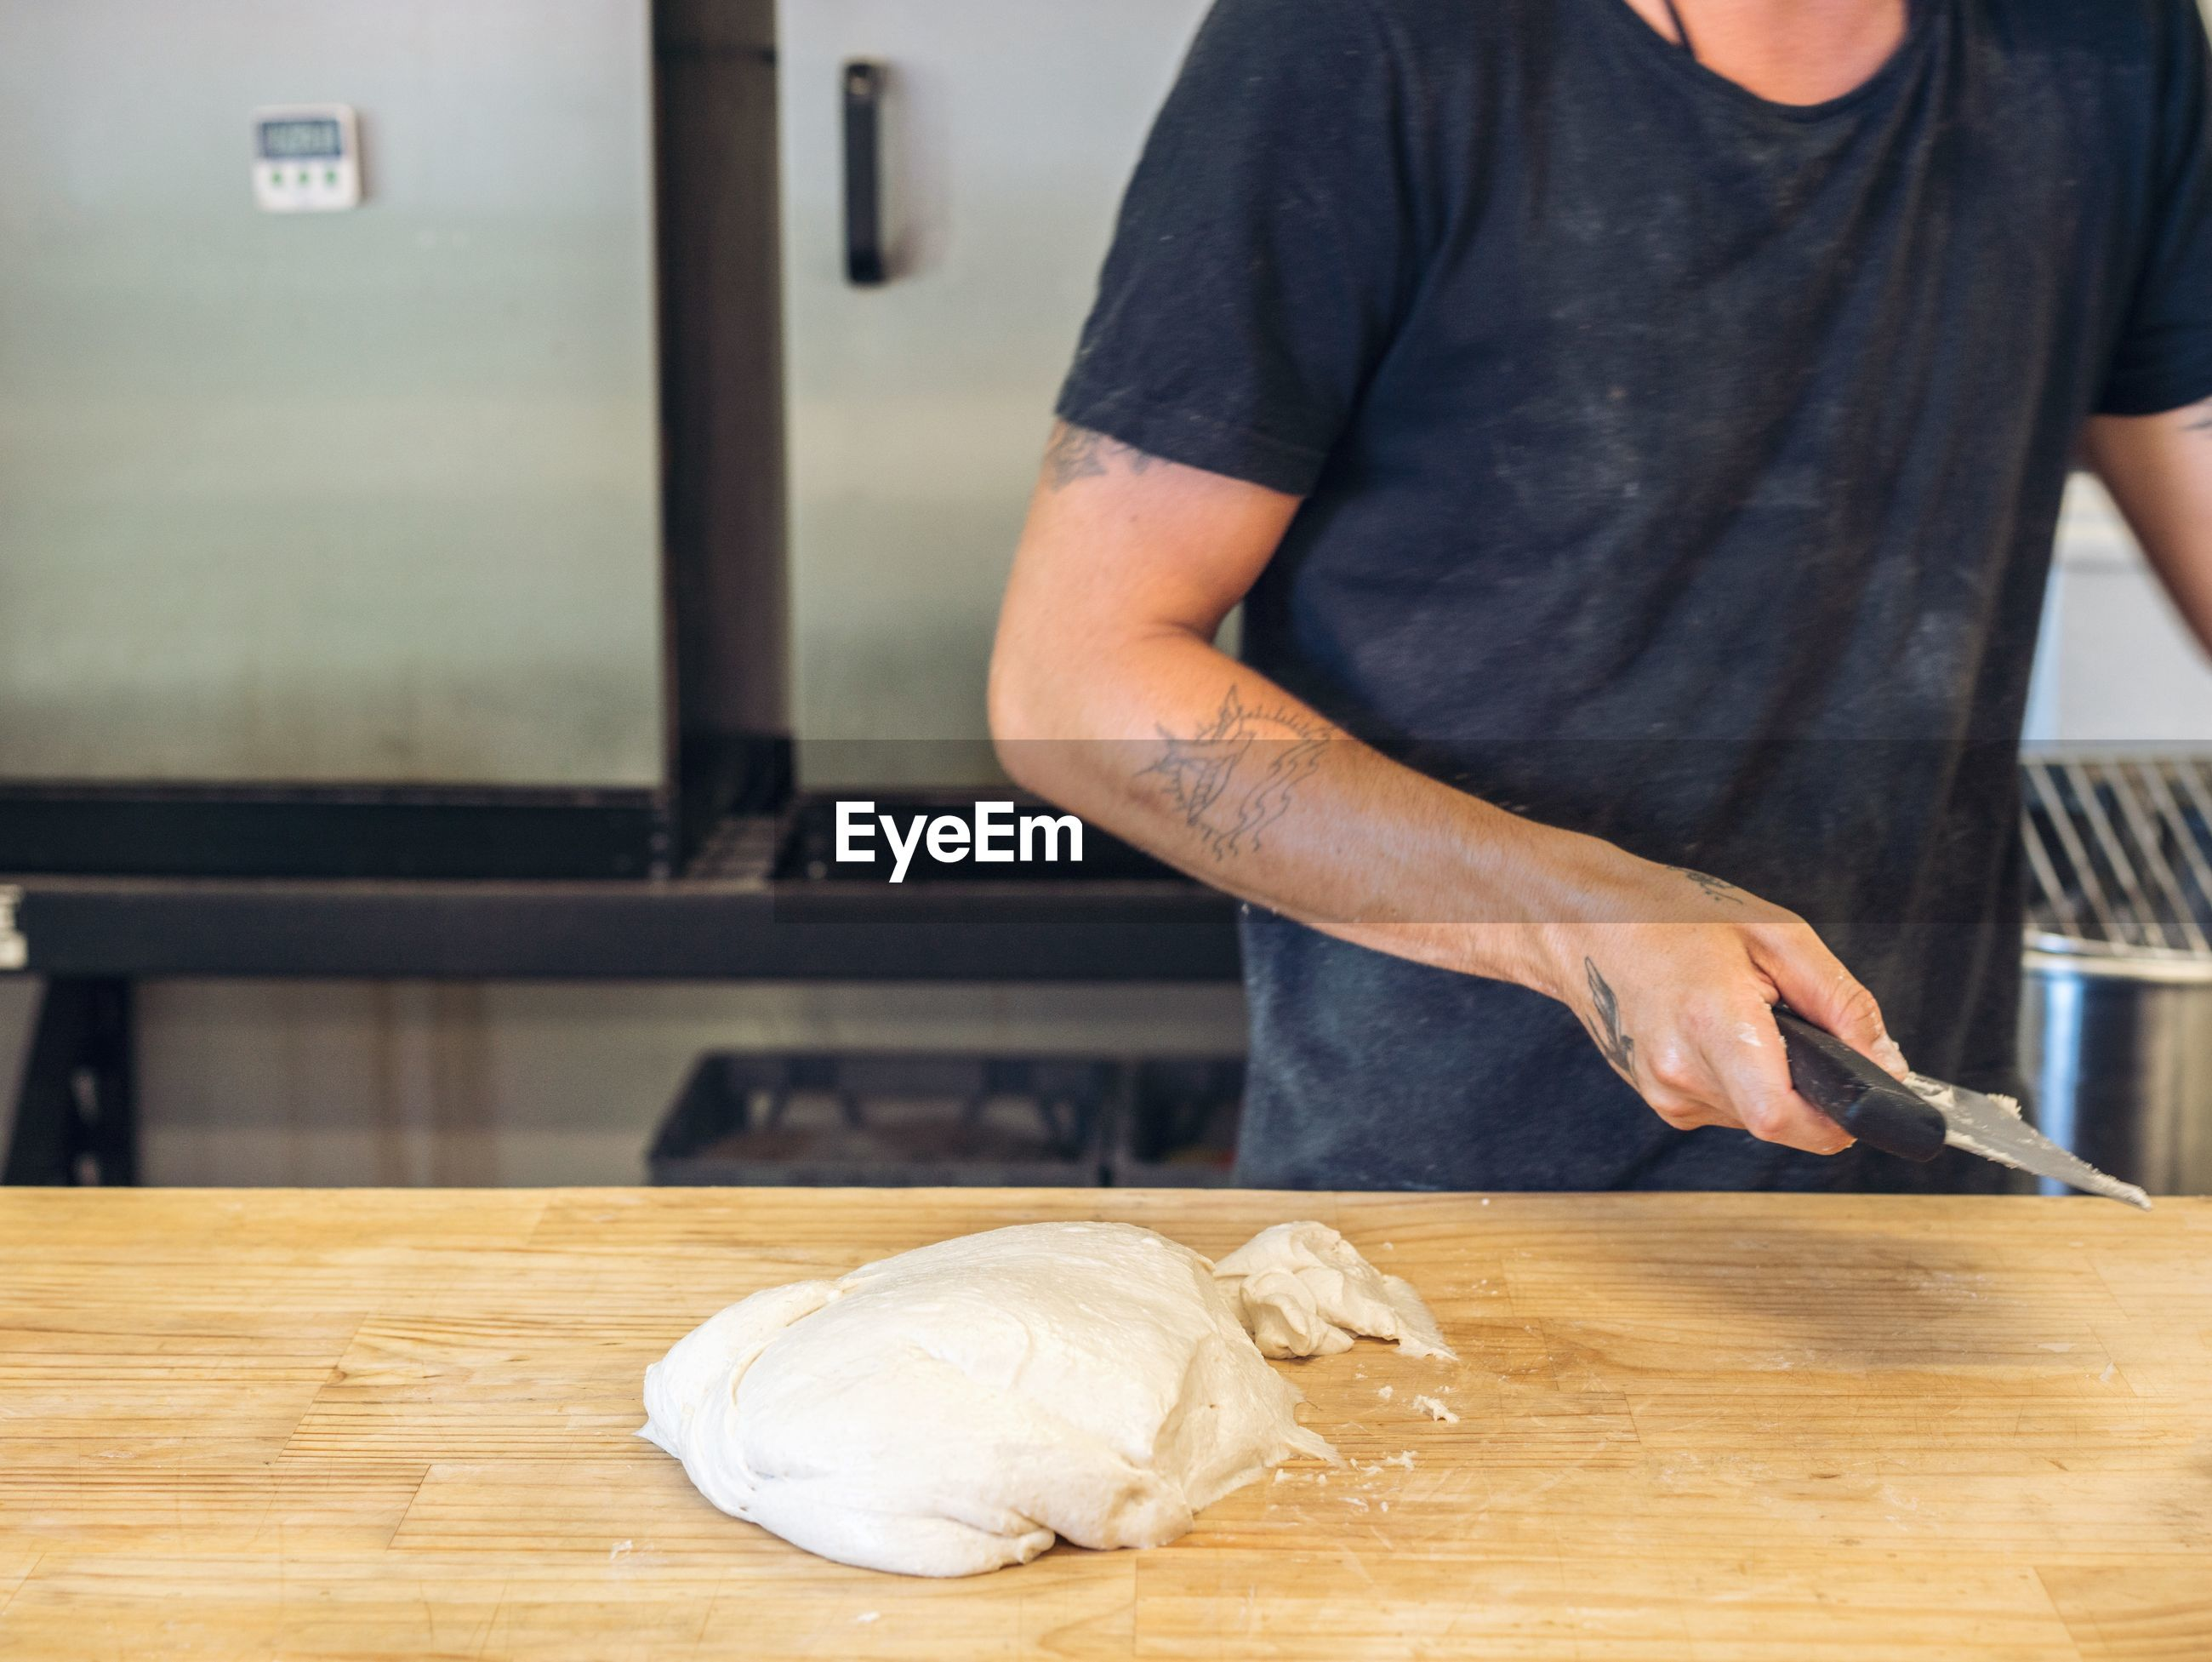 Midsection of man preparing food making bread at table